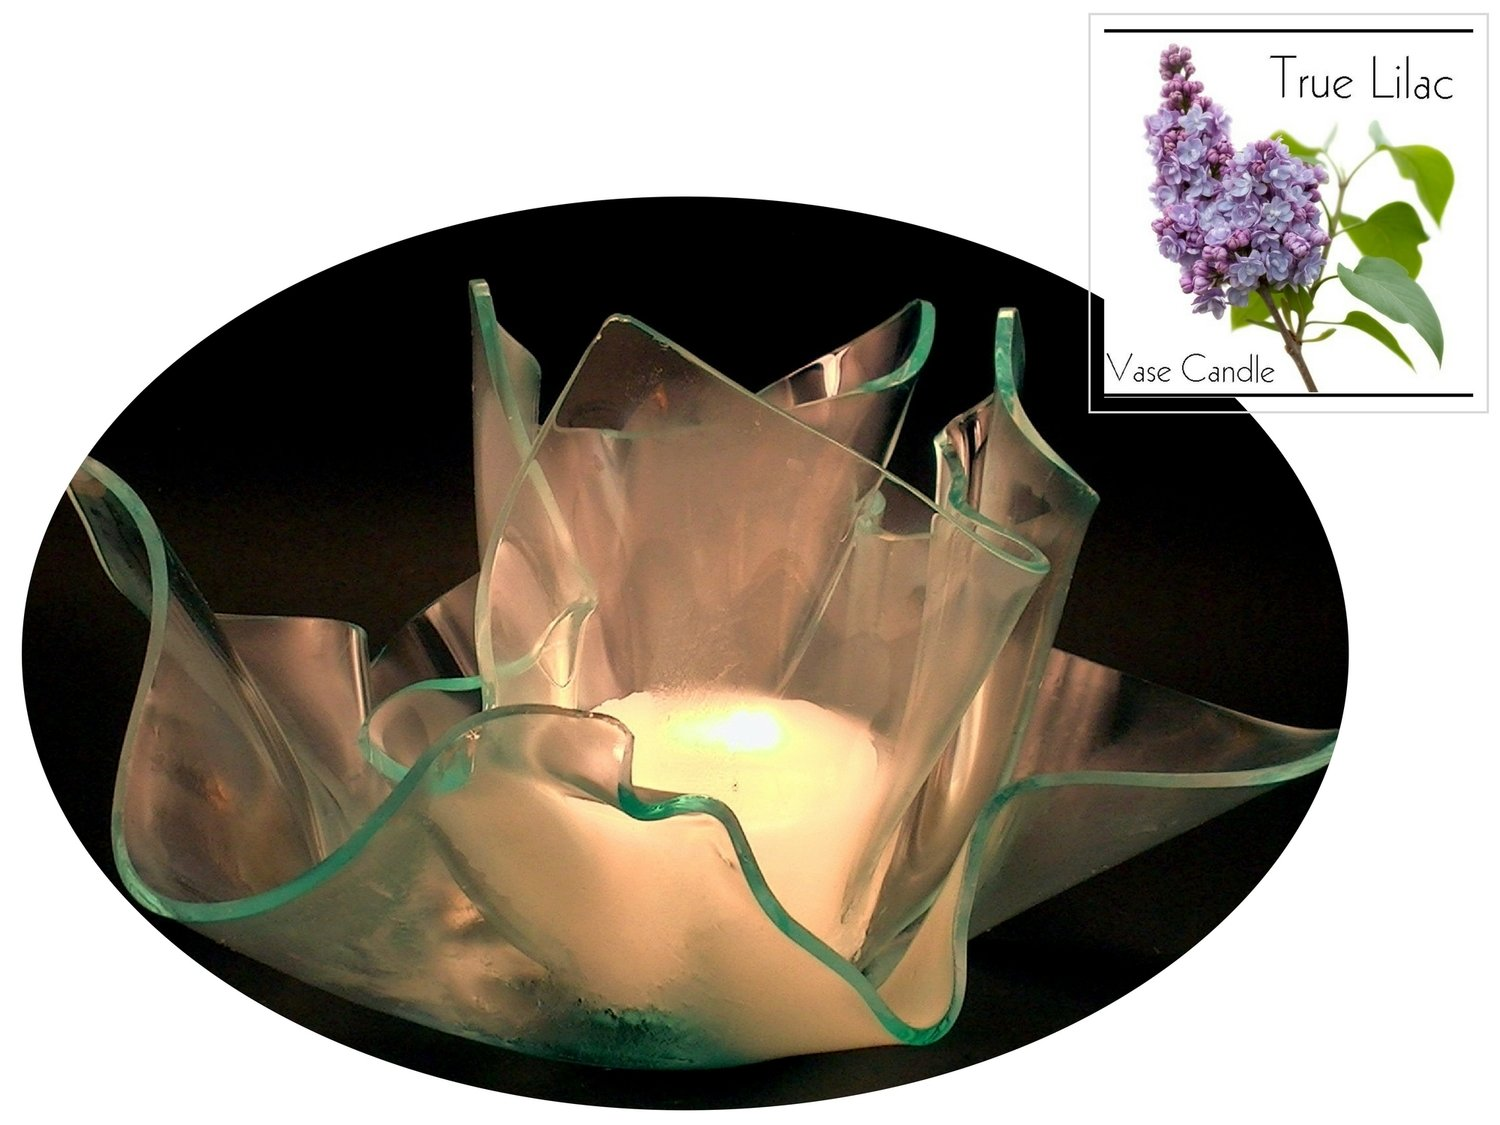 2 True Lilac Candle Refills | Clear Satin Vase & Dish Set